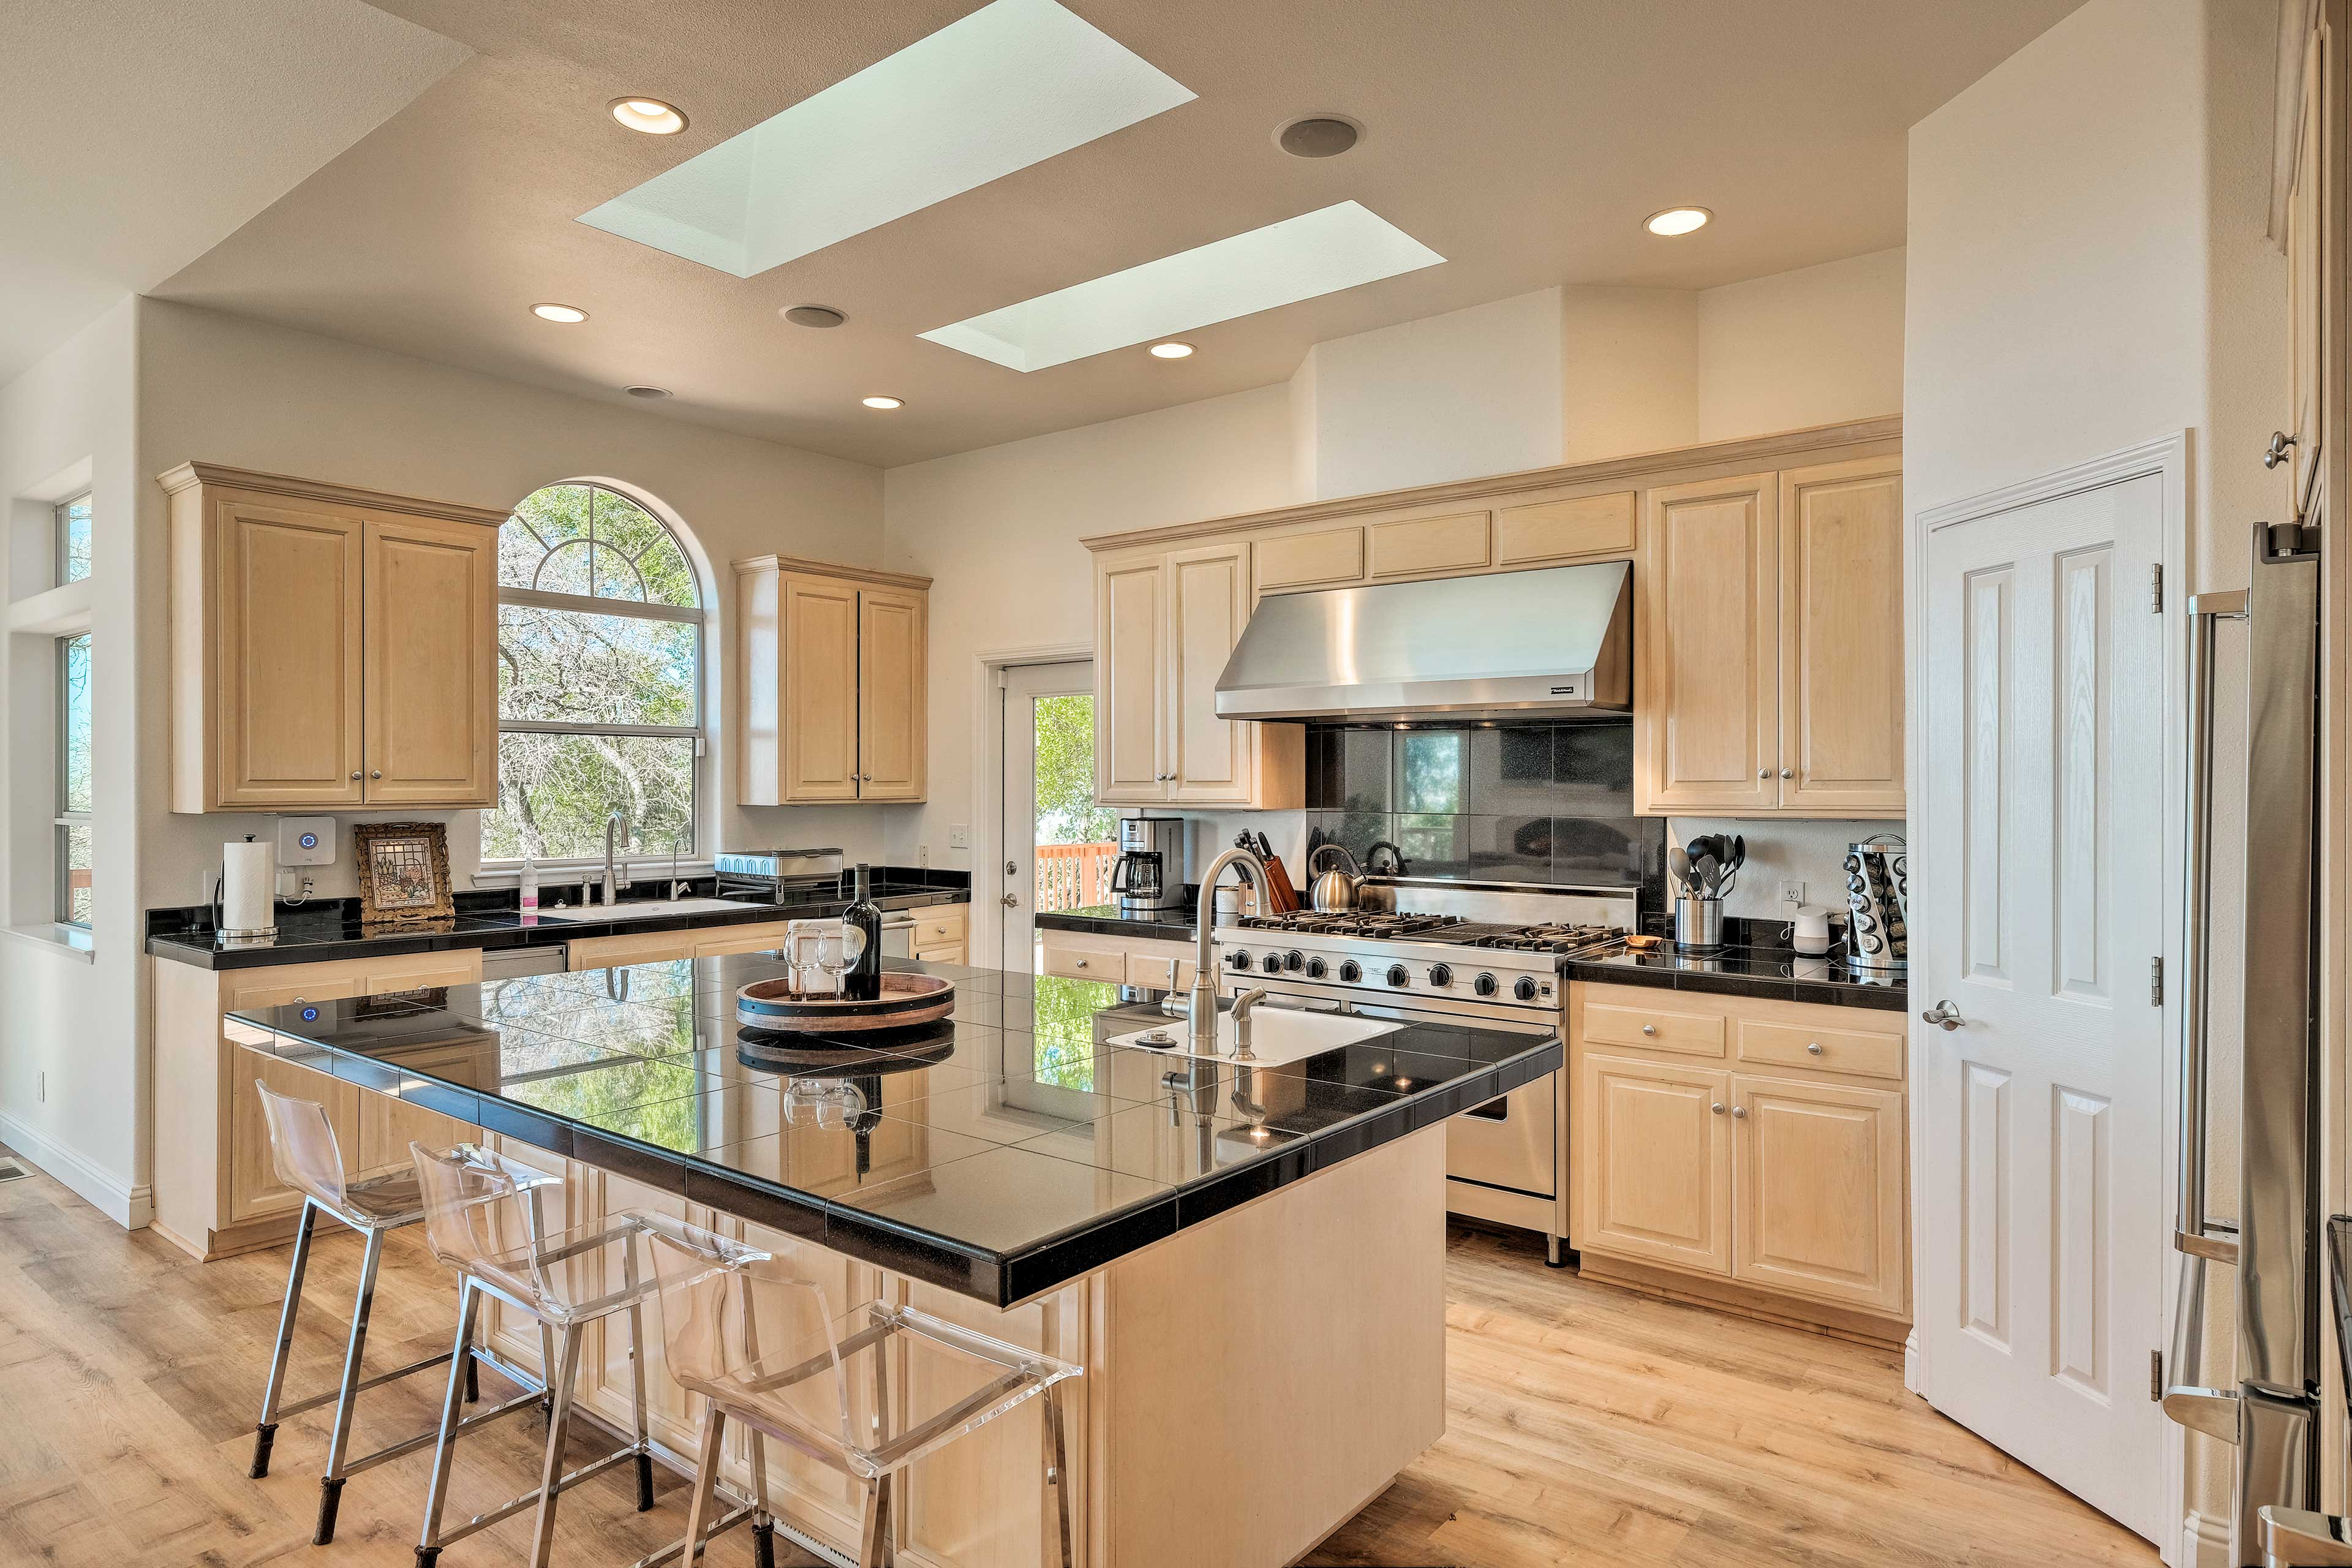 High-end appliances complete the fully equipped kitchen.